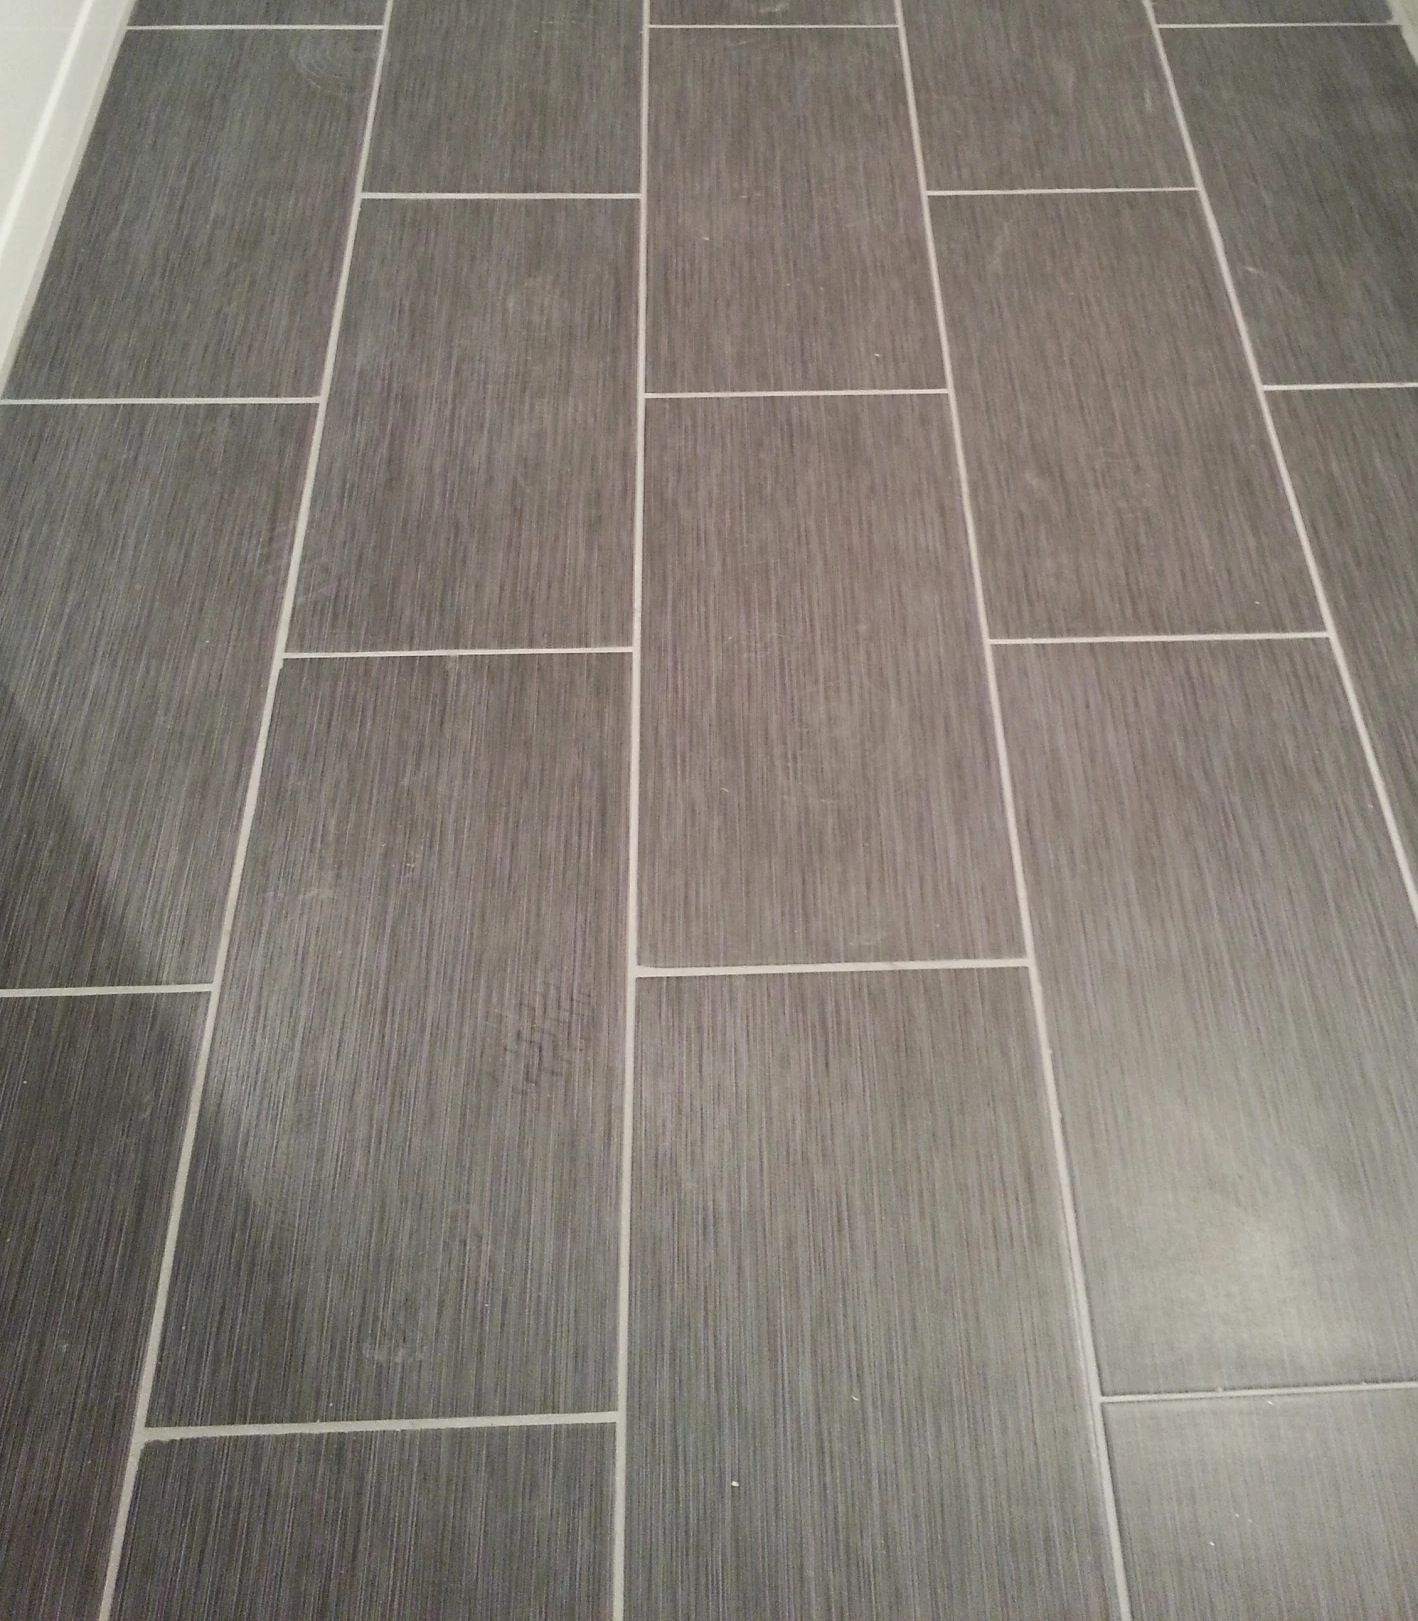 Home Depot Metro Gris 12x24 Tile In My Bathroom Bathroom Design Pinterest 12x24 Tile